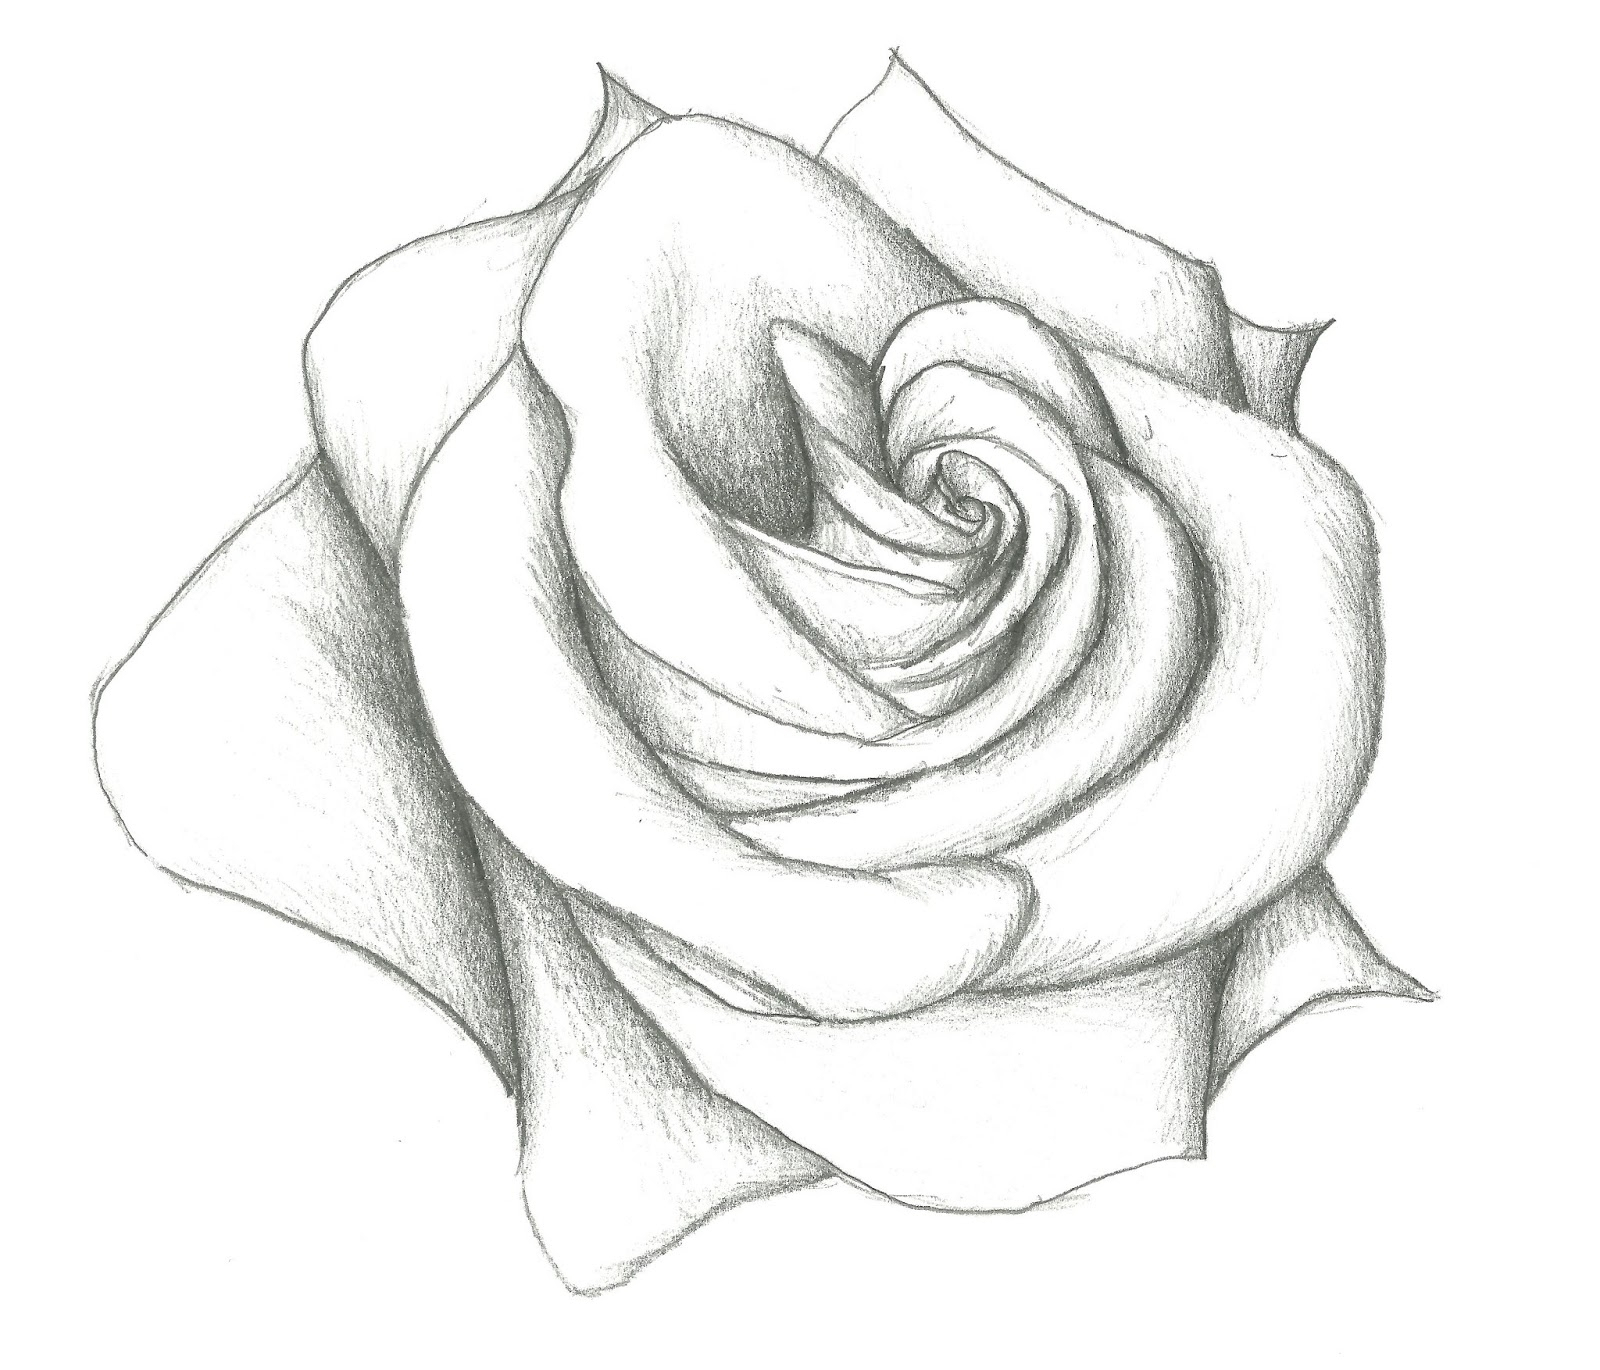 1600x1370 3d Pencil Sketches Of Roses Beautiful Pencil Love Rose Flower 3d